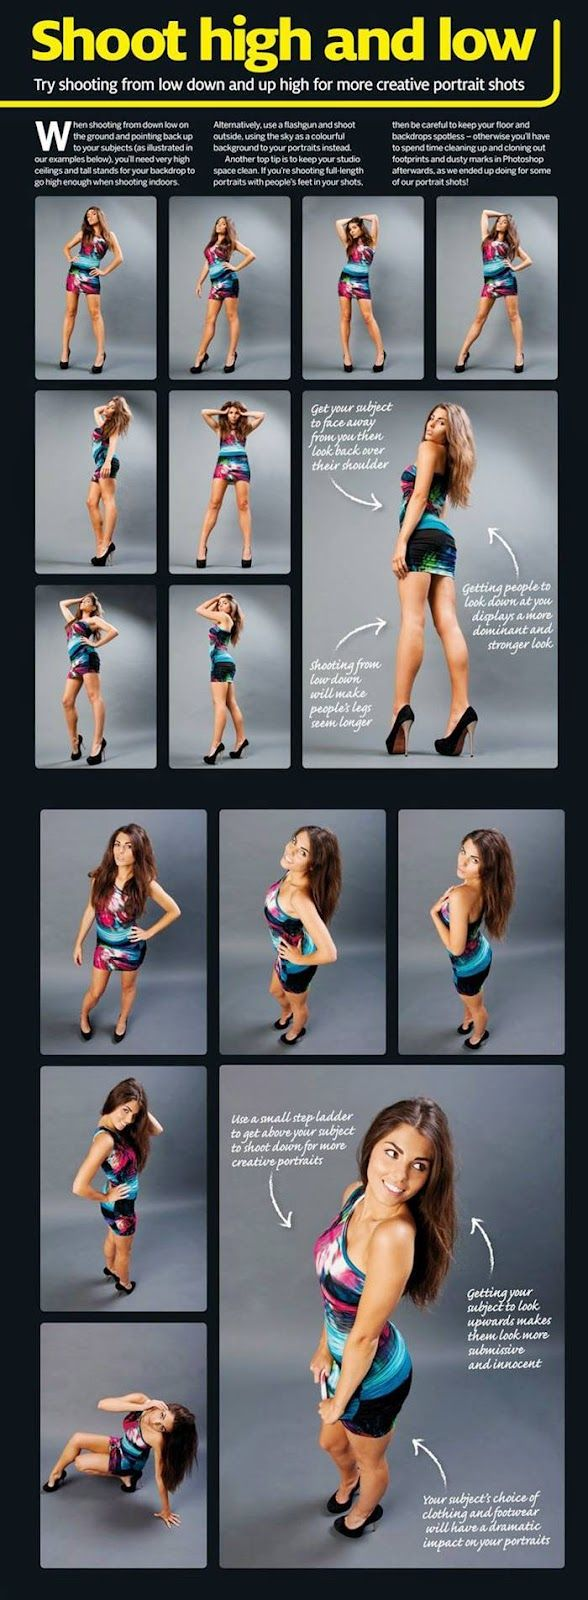 Great ideas for a girls photo shoot